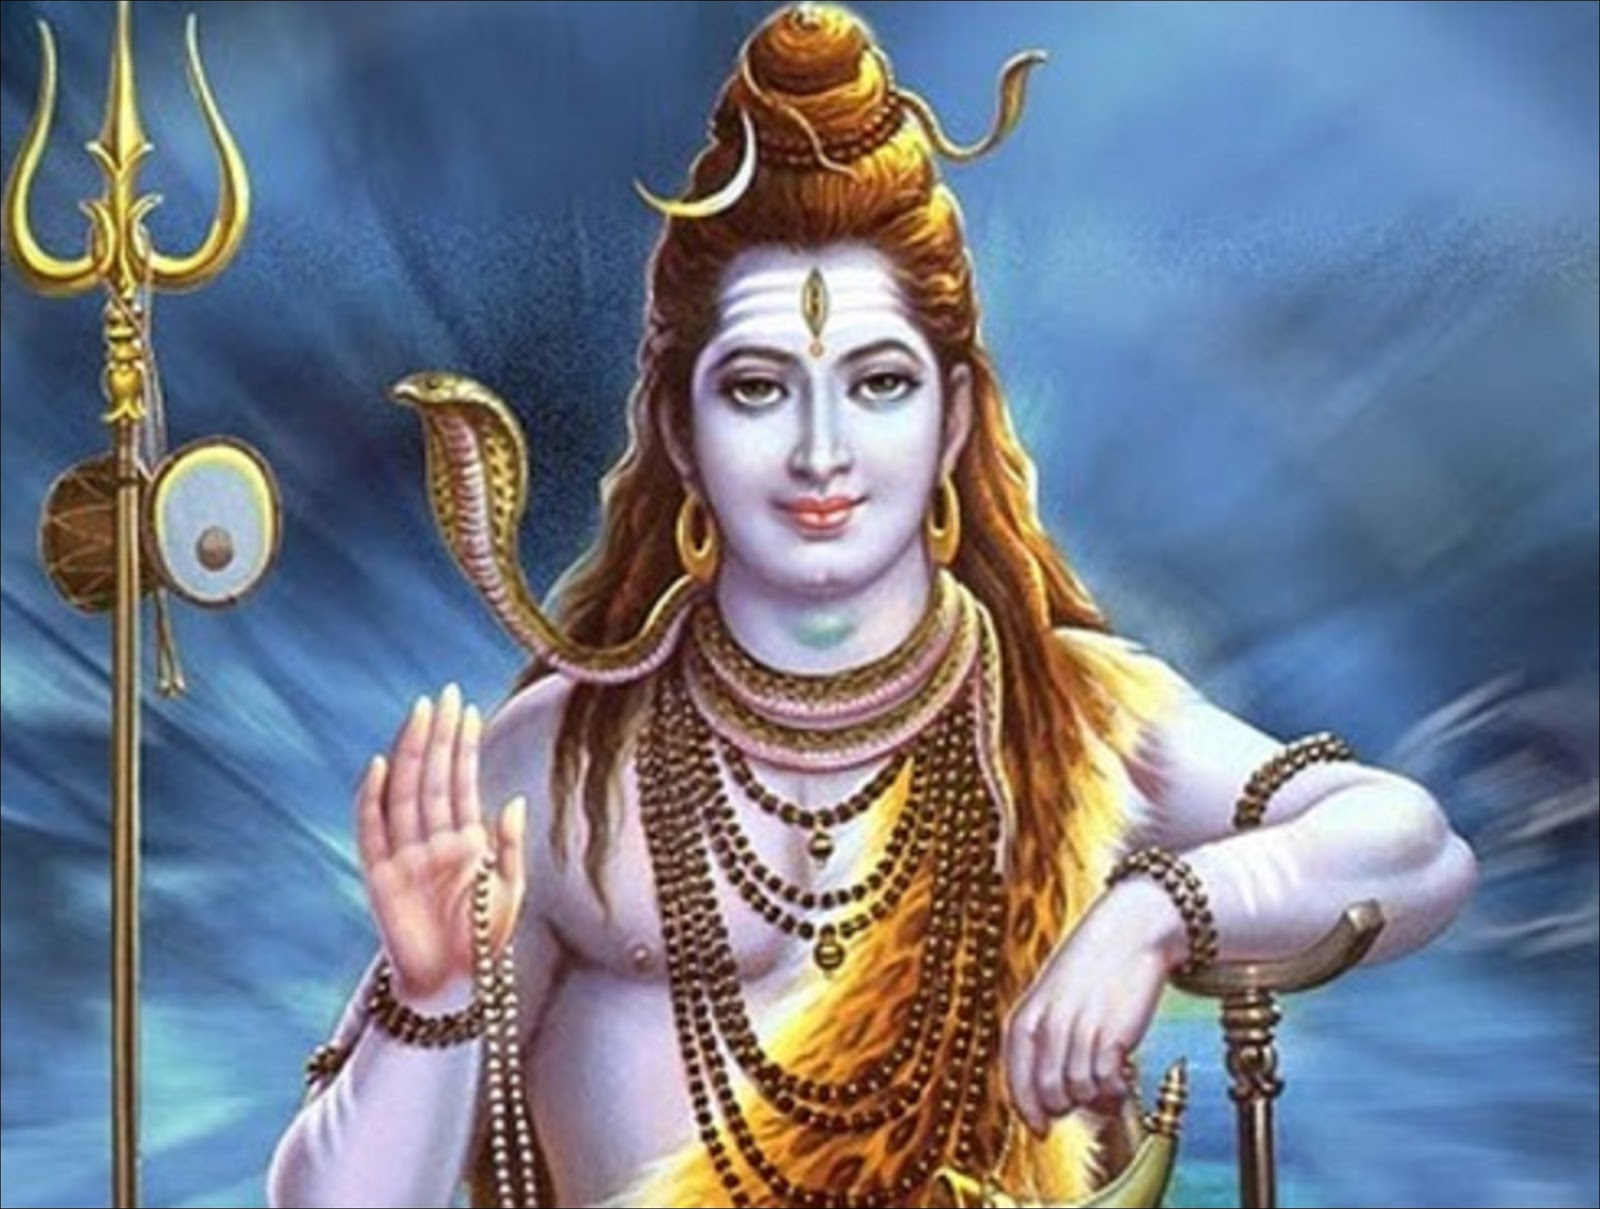 Lord Shiva - The god